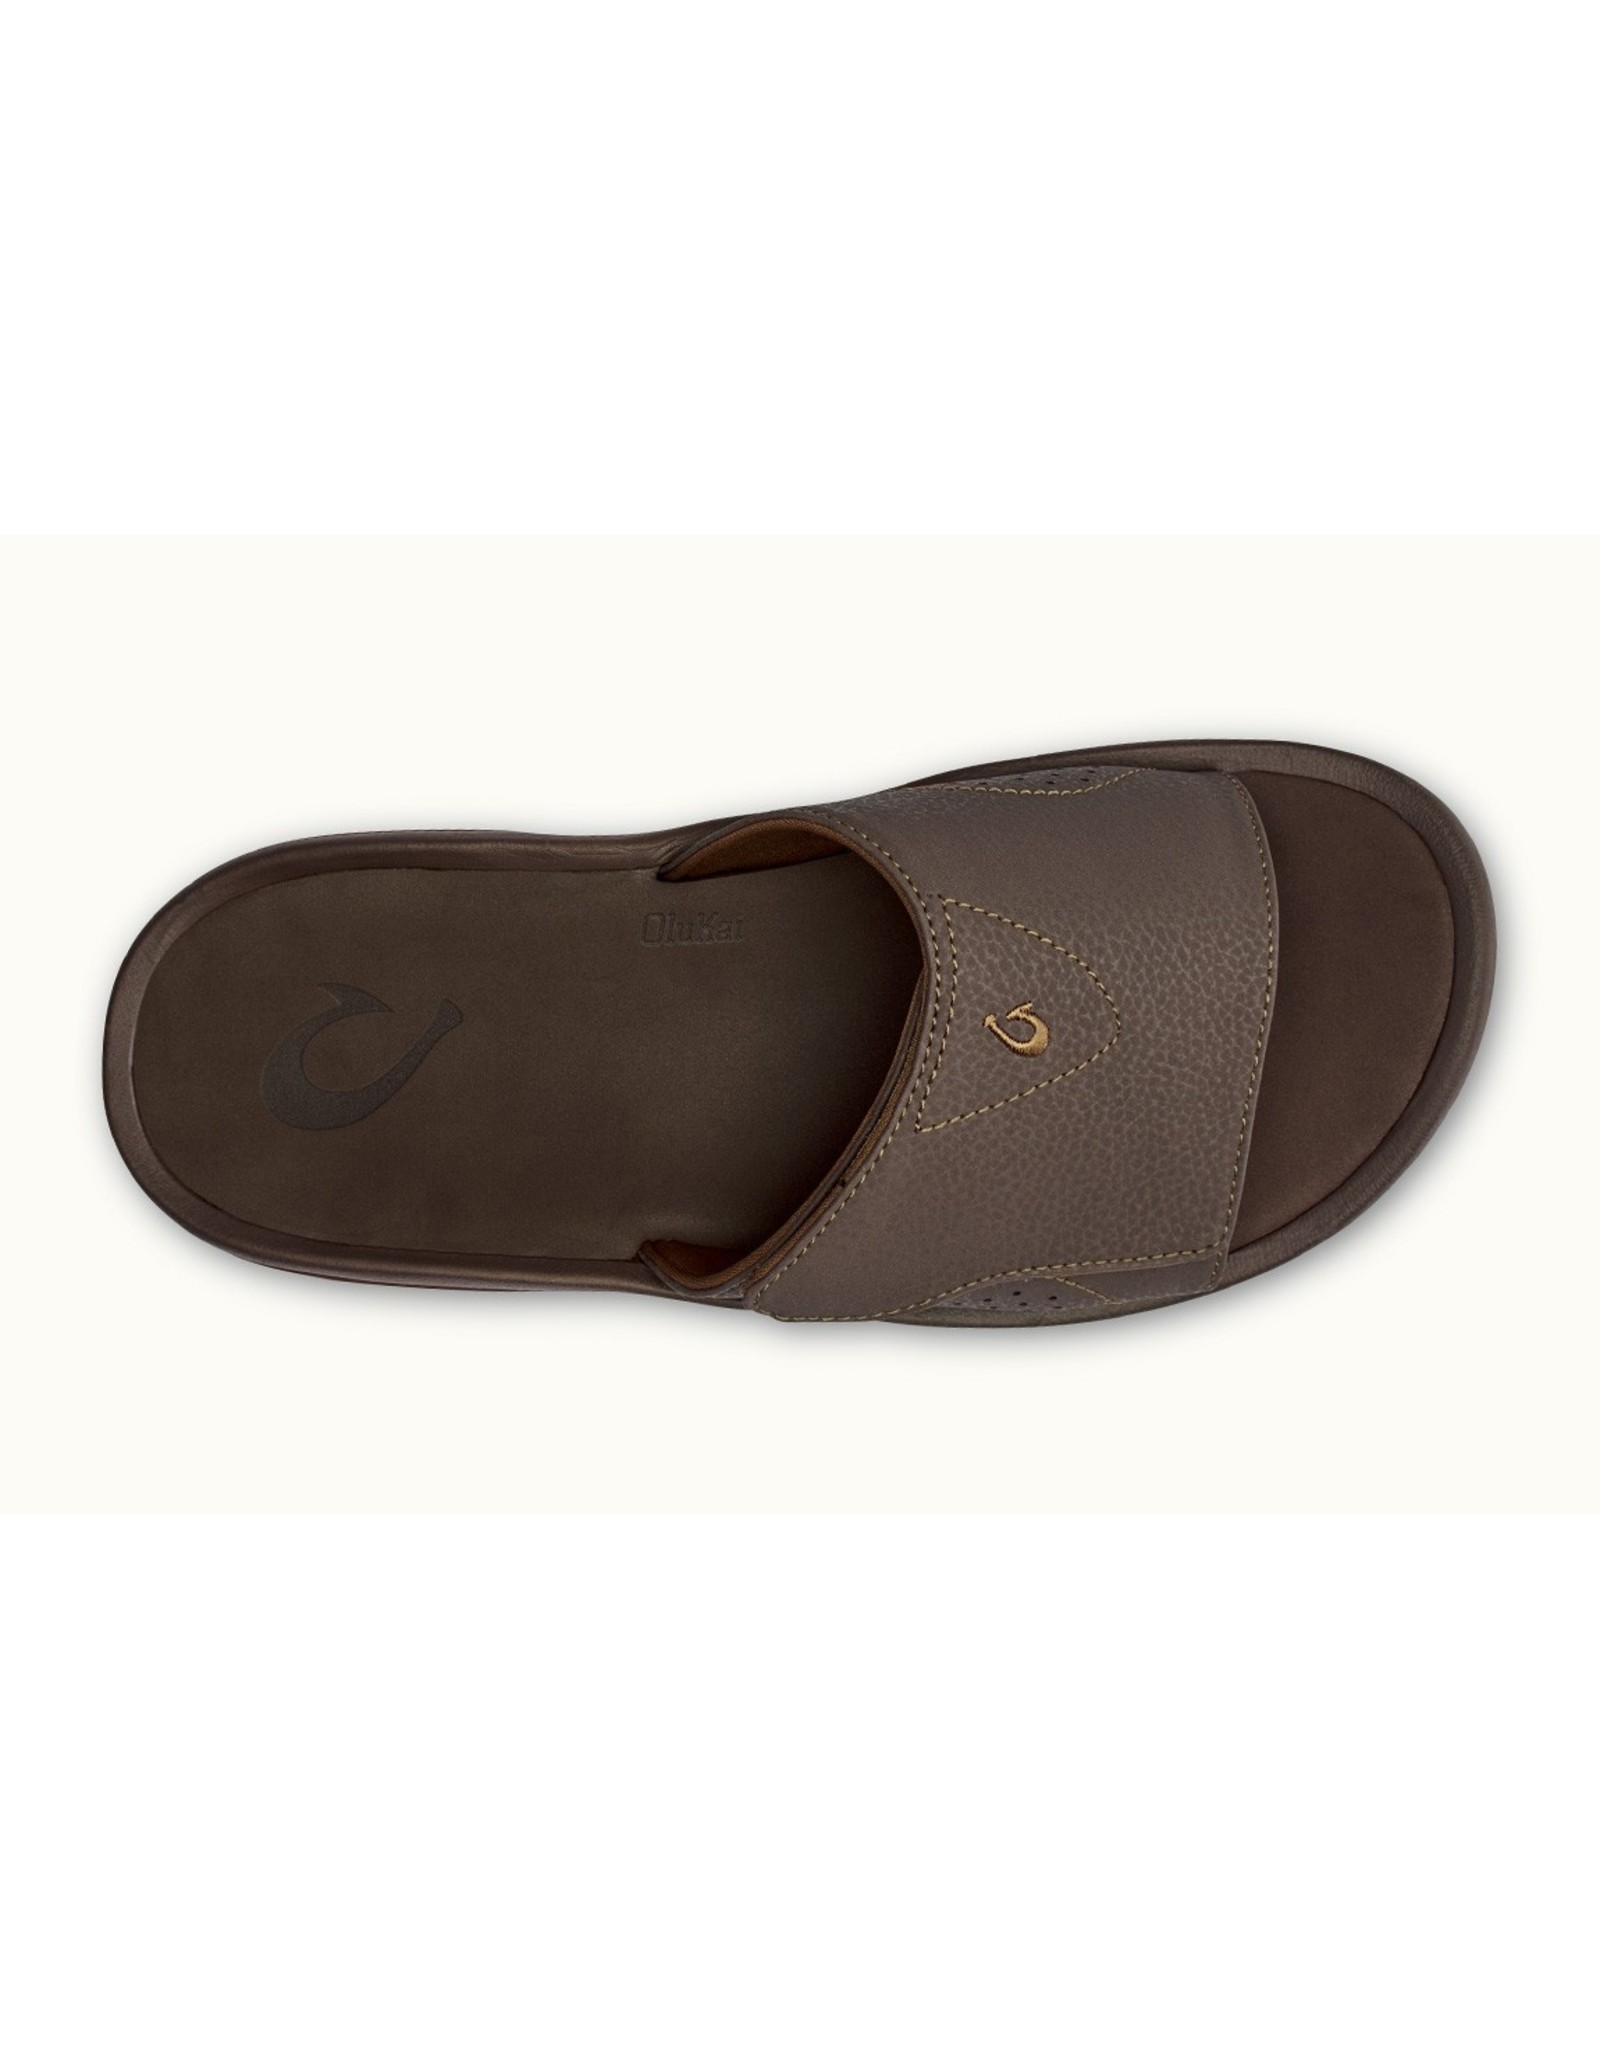 OluKai Men's Nalu Slide - SP19